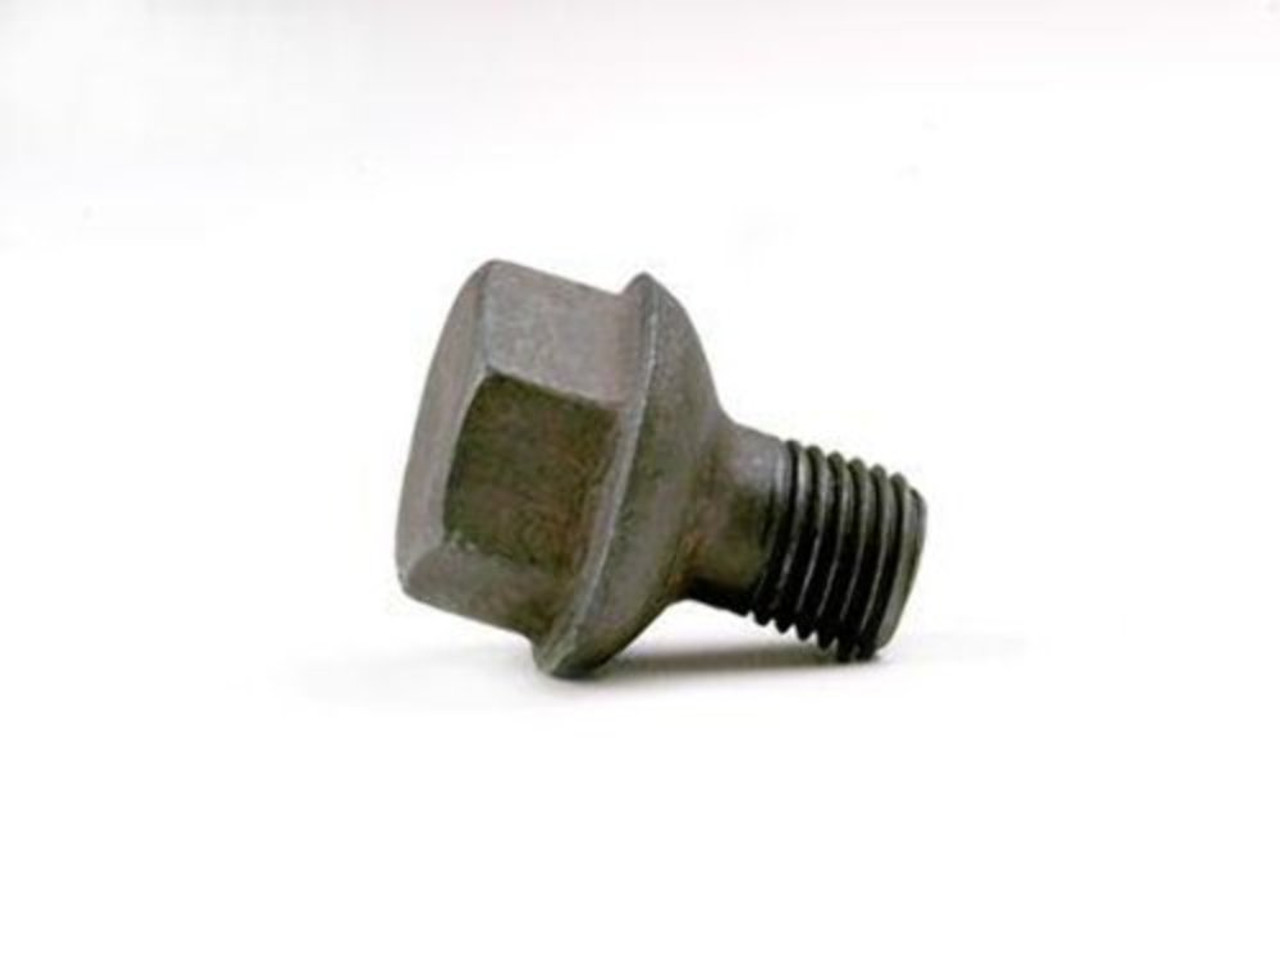 12MM LUG BOLT, dune buggy vw baja bug